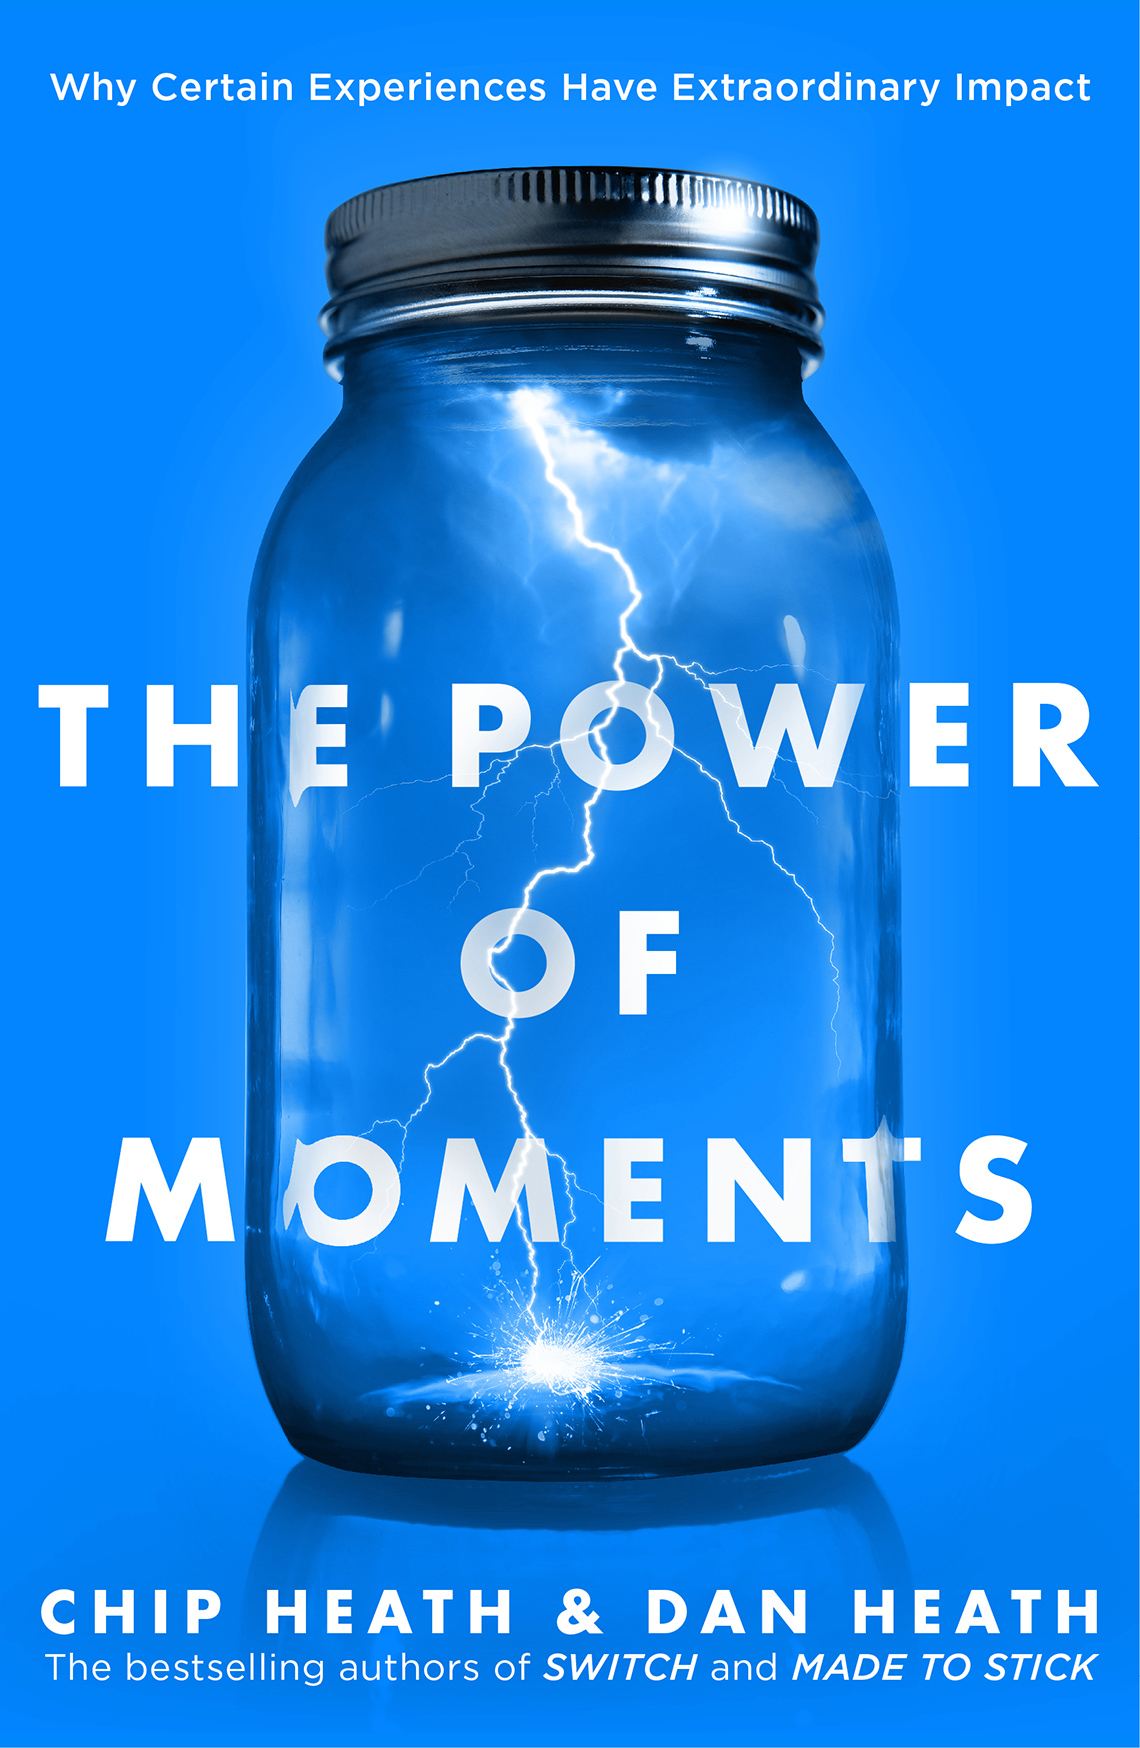 'The Power of Moments' by Chip and Dan Heath